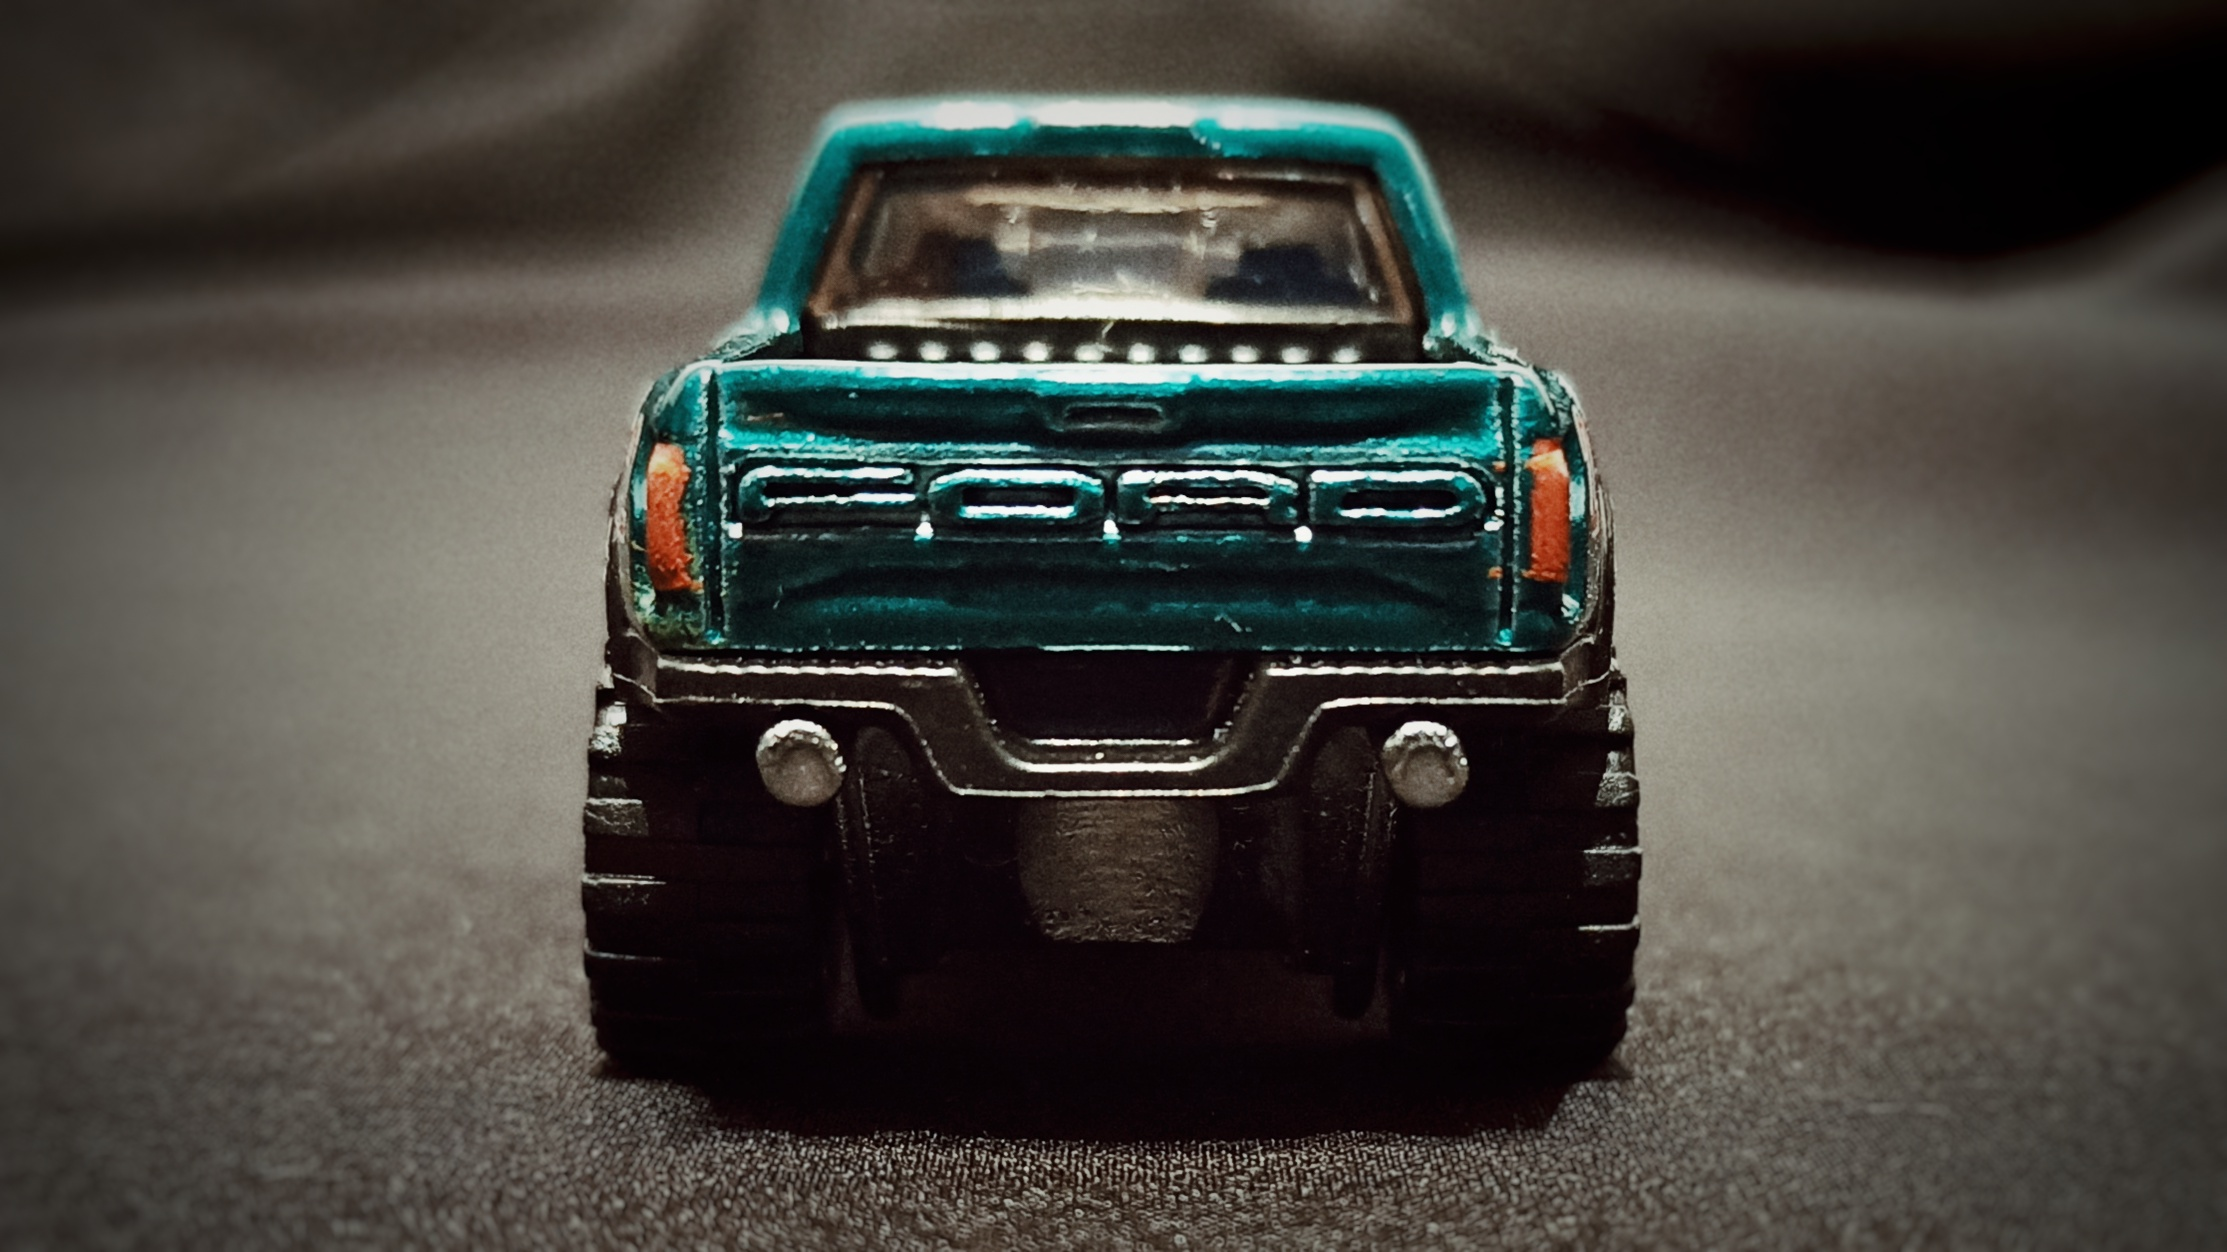 Hot Wheels '17 Ford F-150 Raptor (GTD72) 2021 Collector Edition (Dollar General Mail-in) spectraflame aqua green back